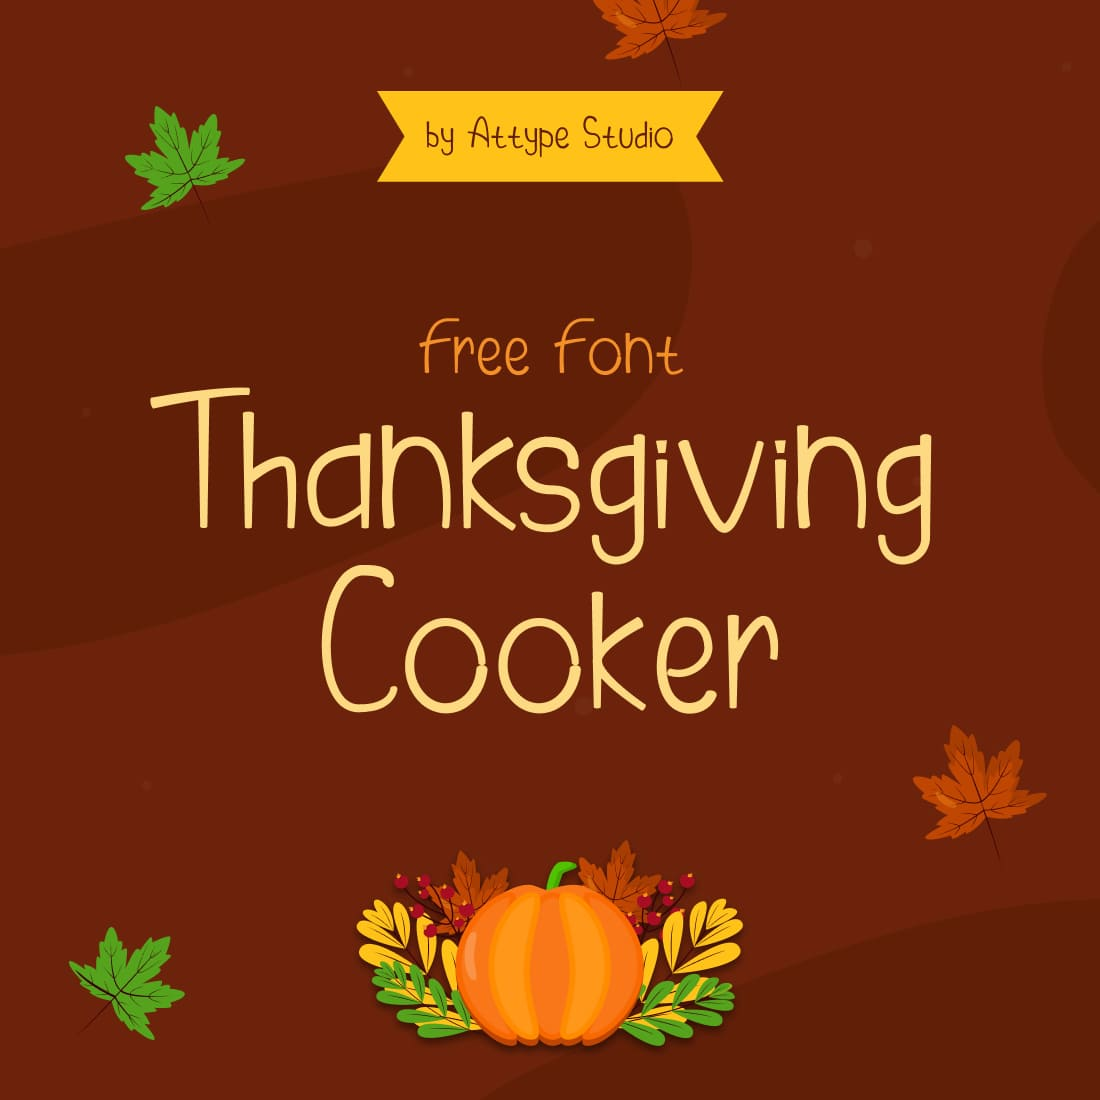 Thanksgiving Cooker Free Font Main Cover by MasterBundles.